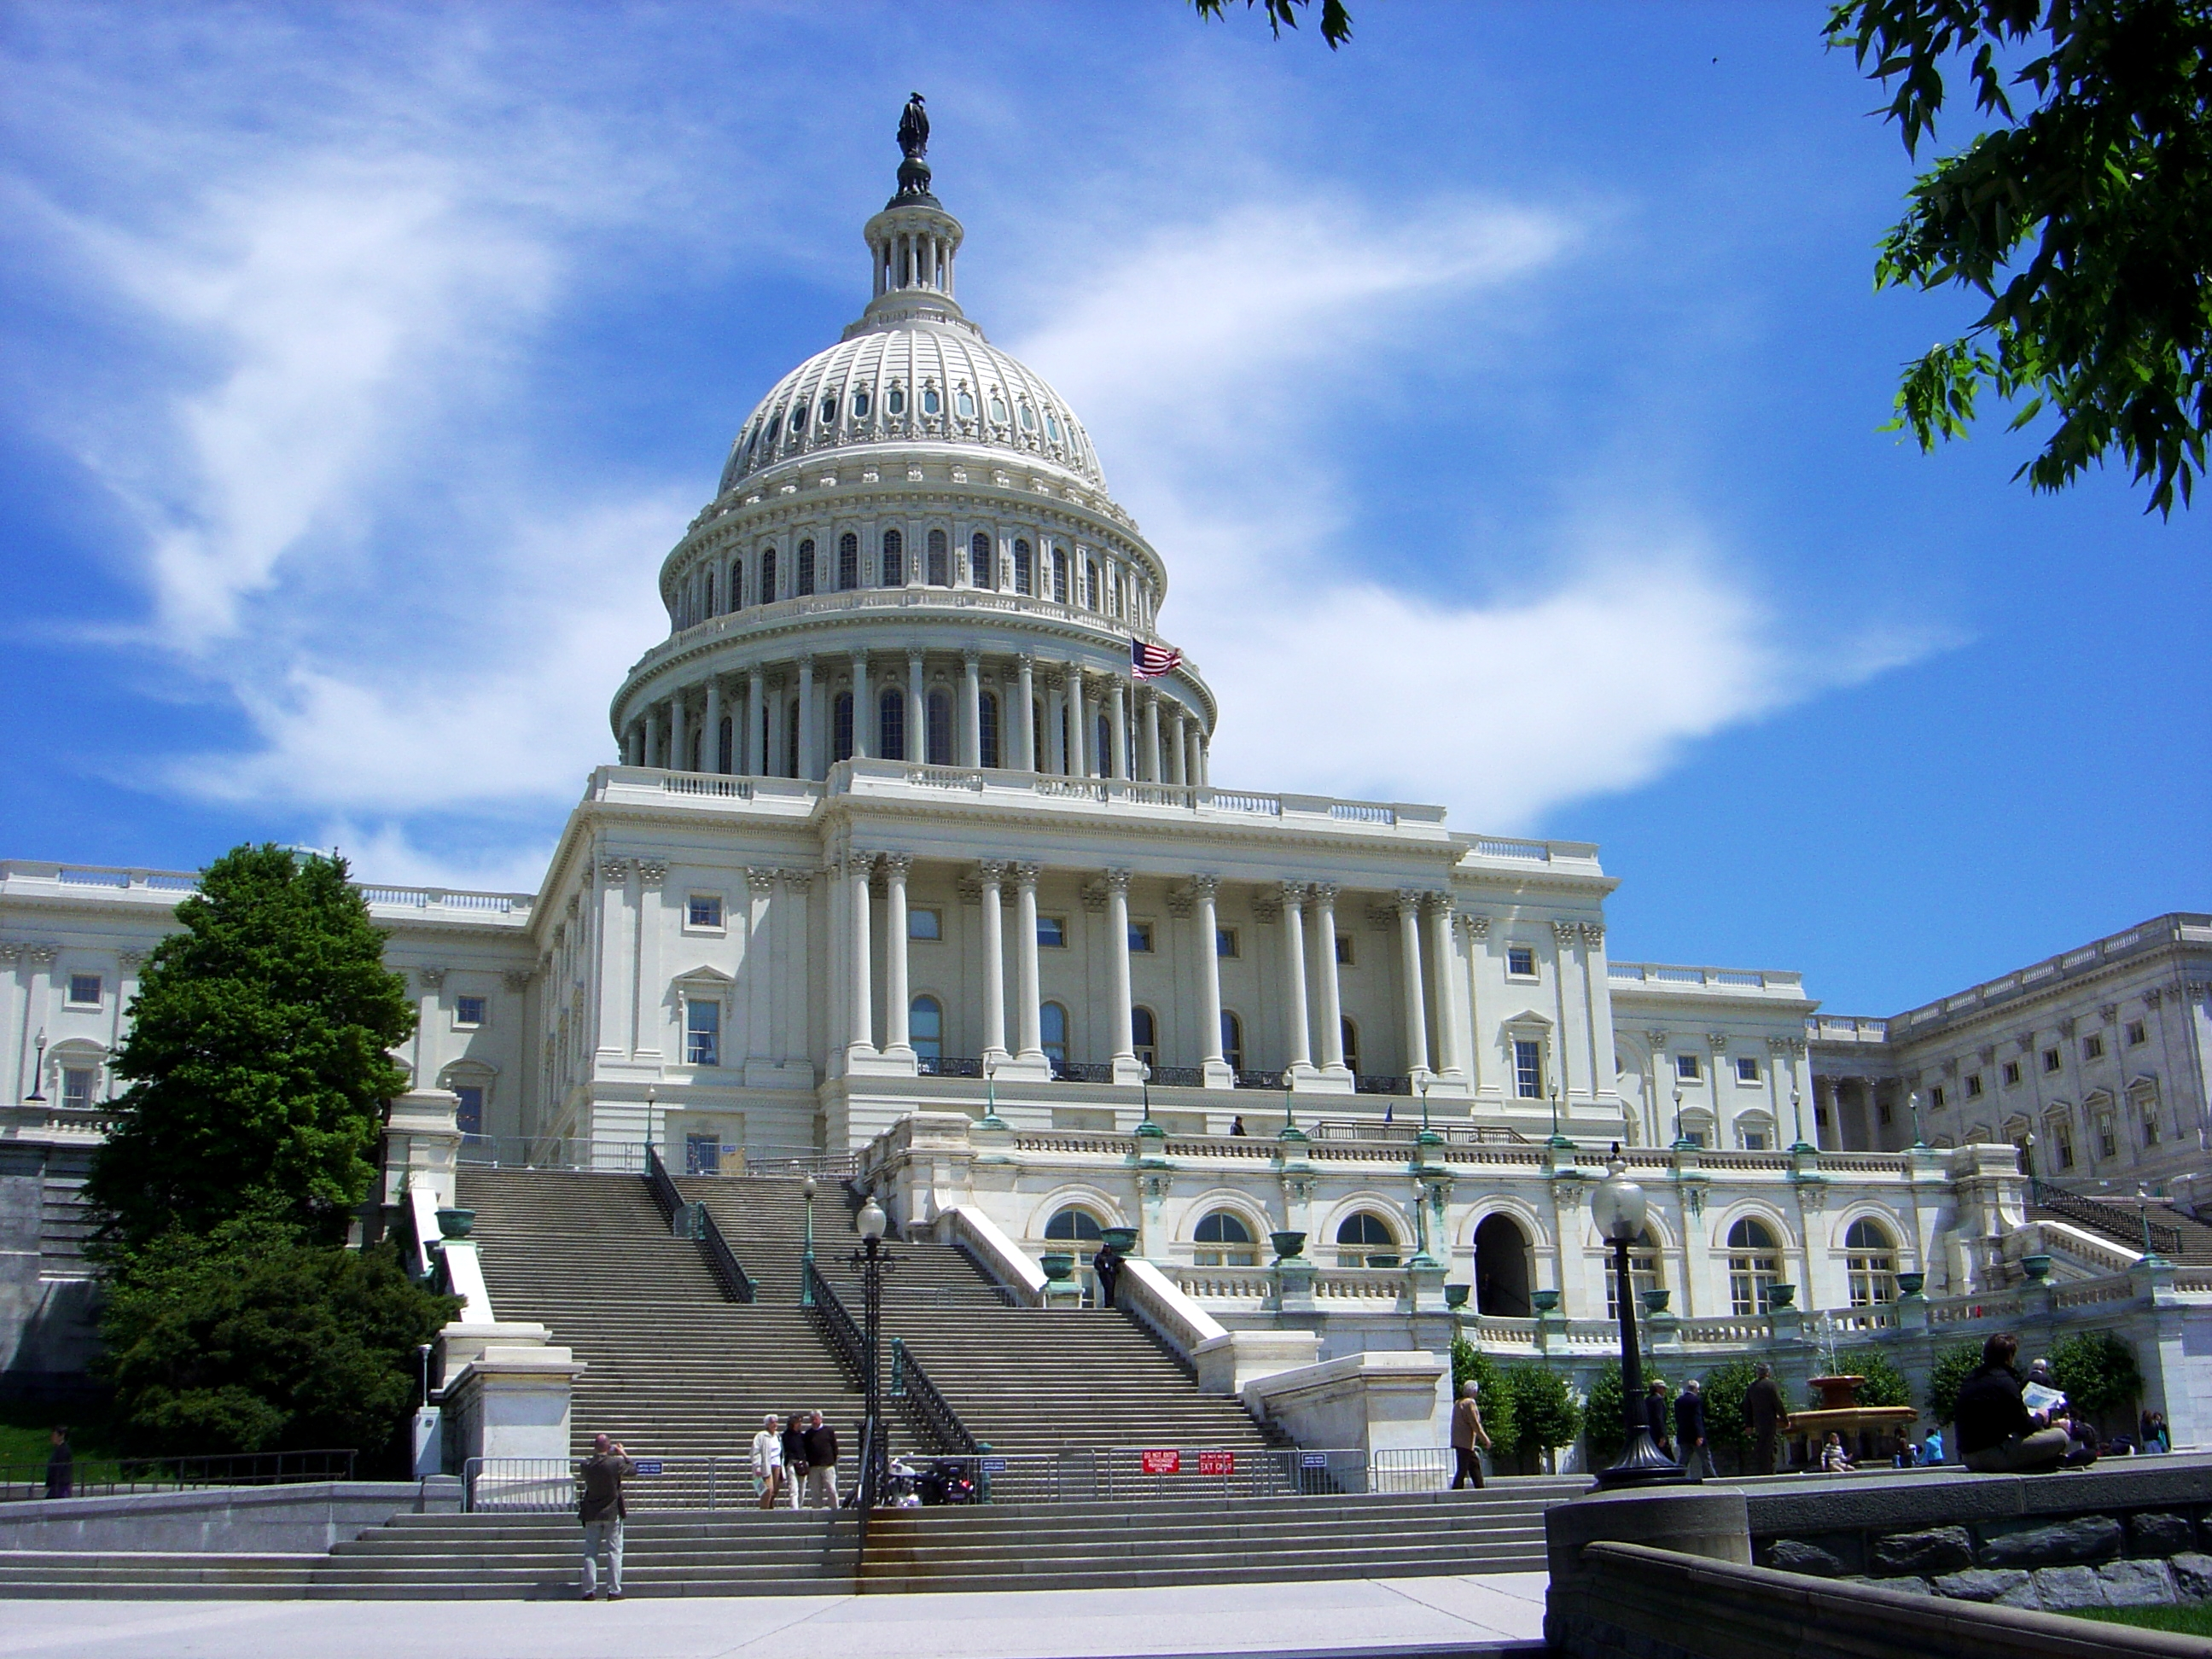 A picture of the United States capital building